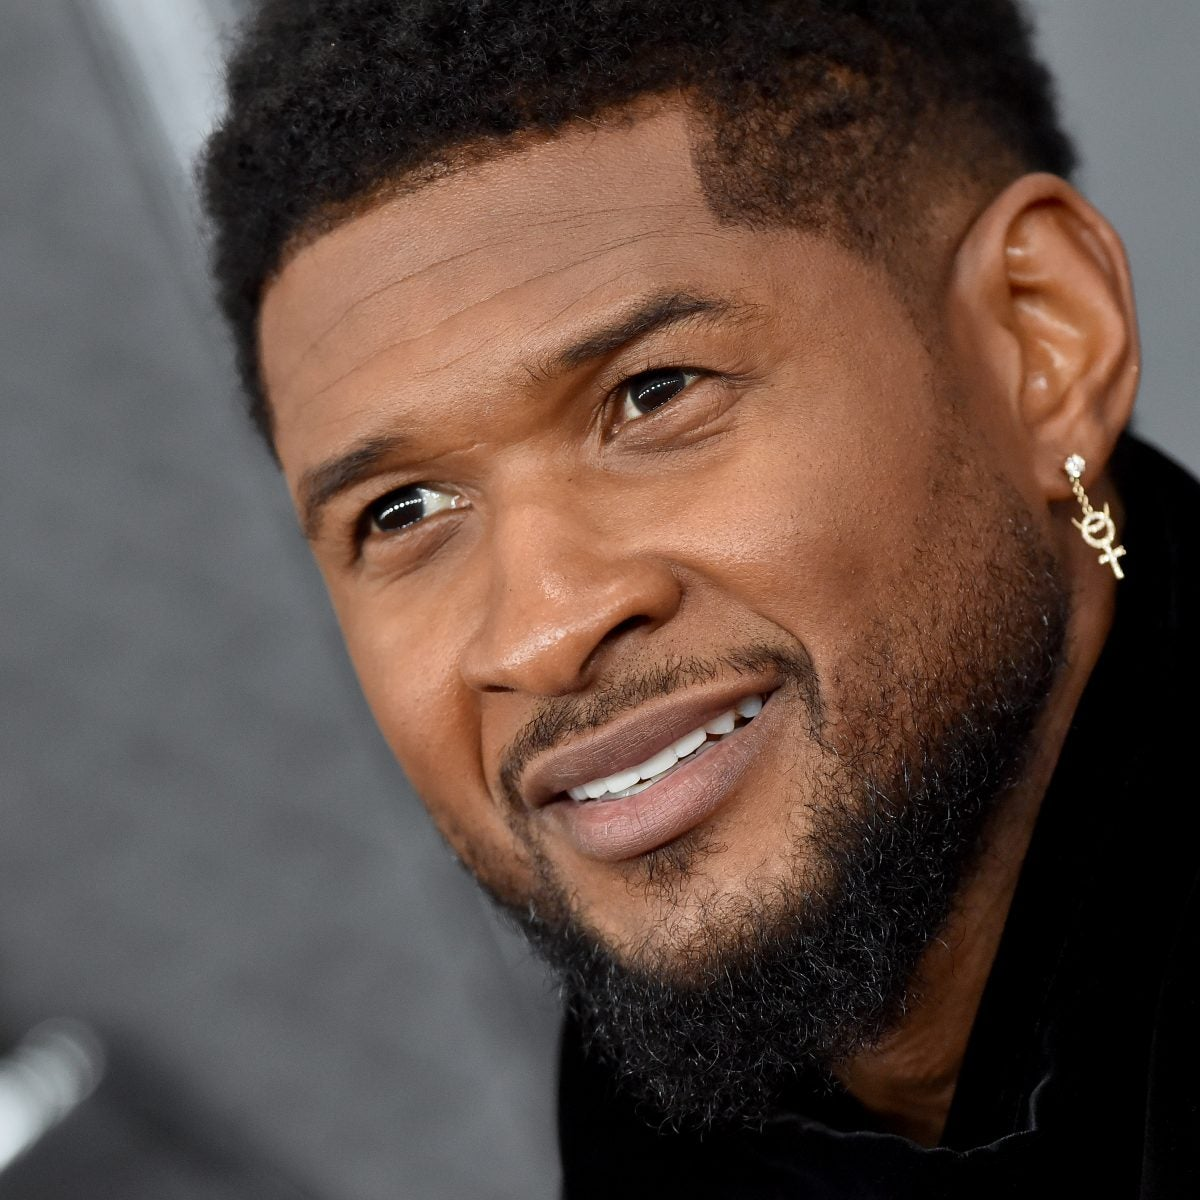 Usher Shades The Weeknd After The Canadian Singer Claimed The R&B Legend Stole His Style On 'Climax'